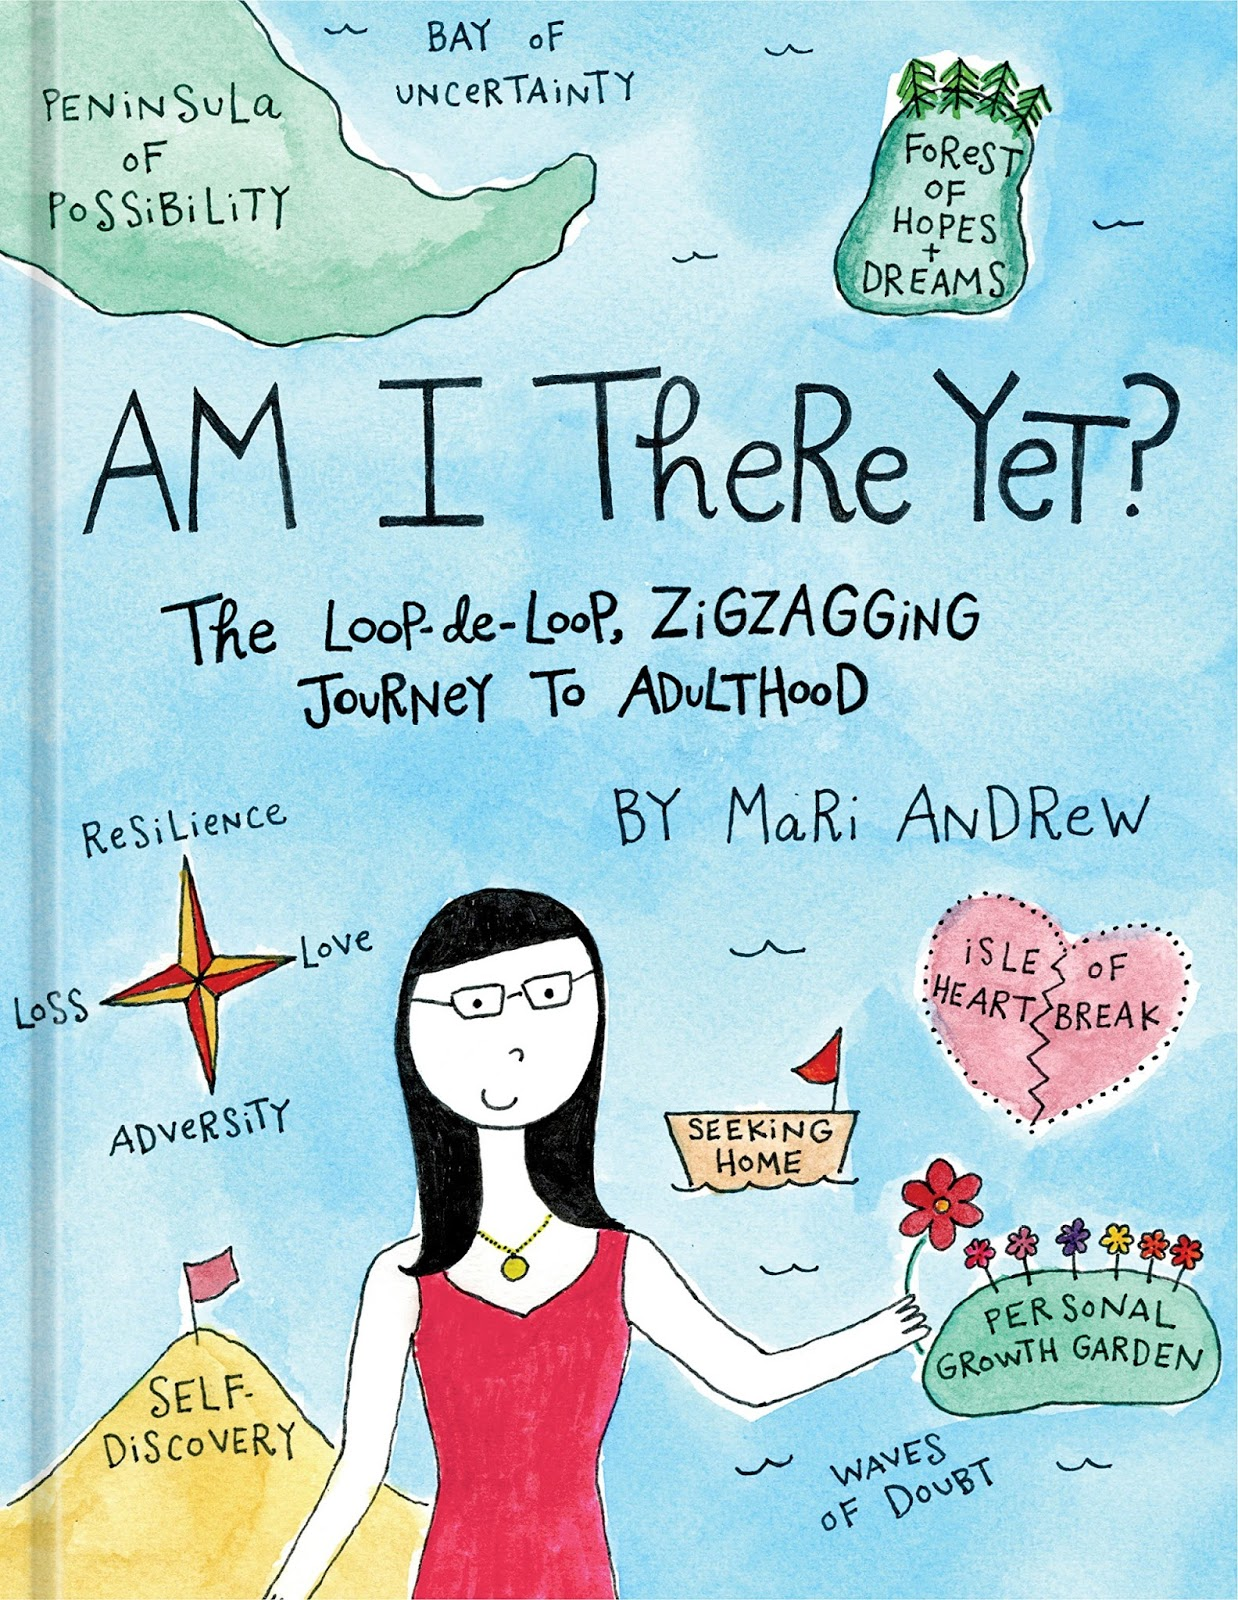 Am I There Yet?: The Loop De Loop, Zigzagging Journey To